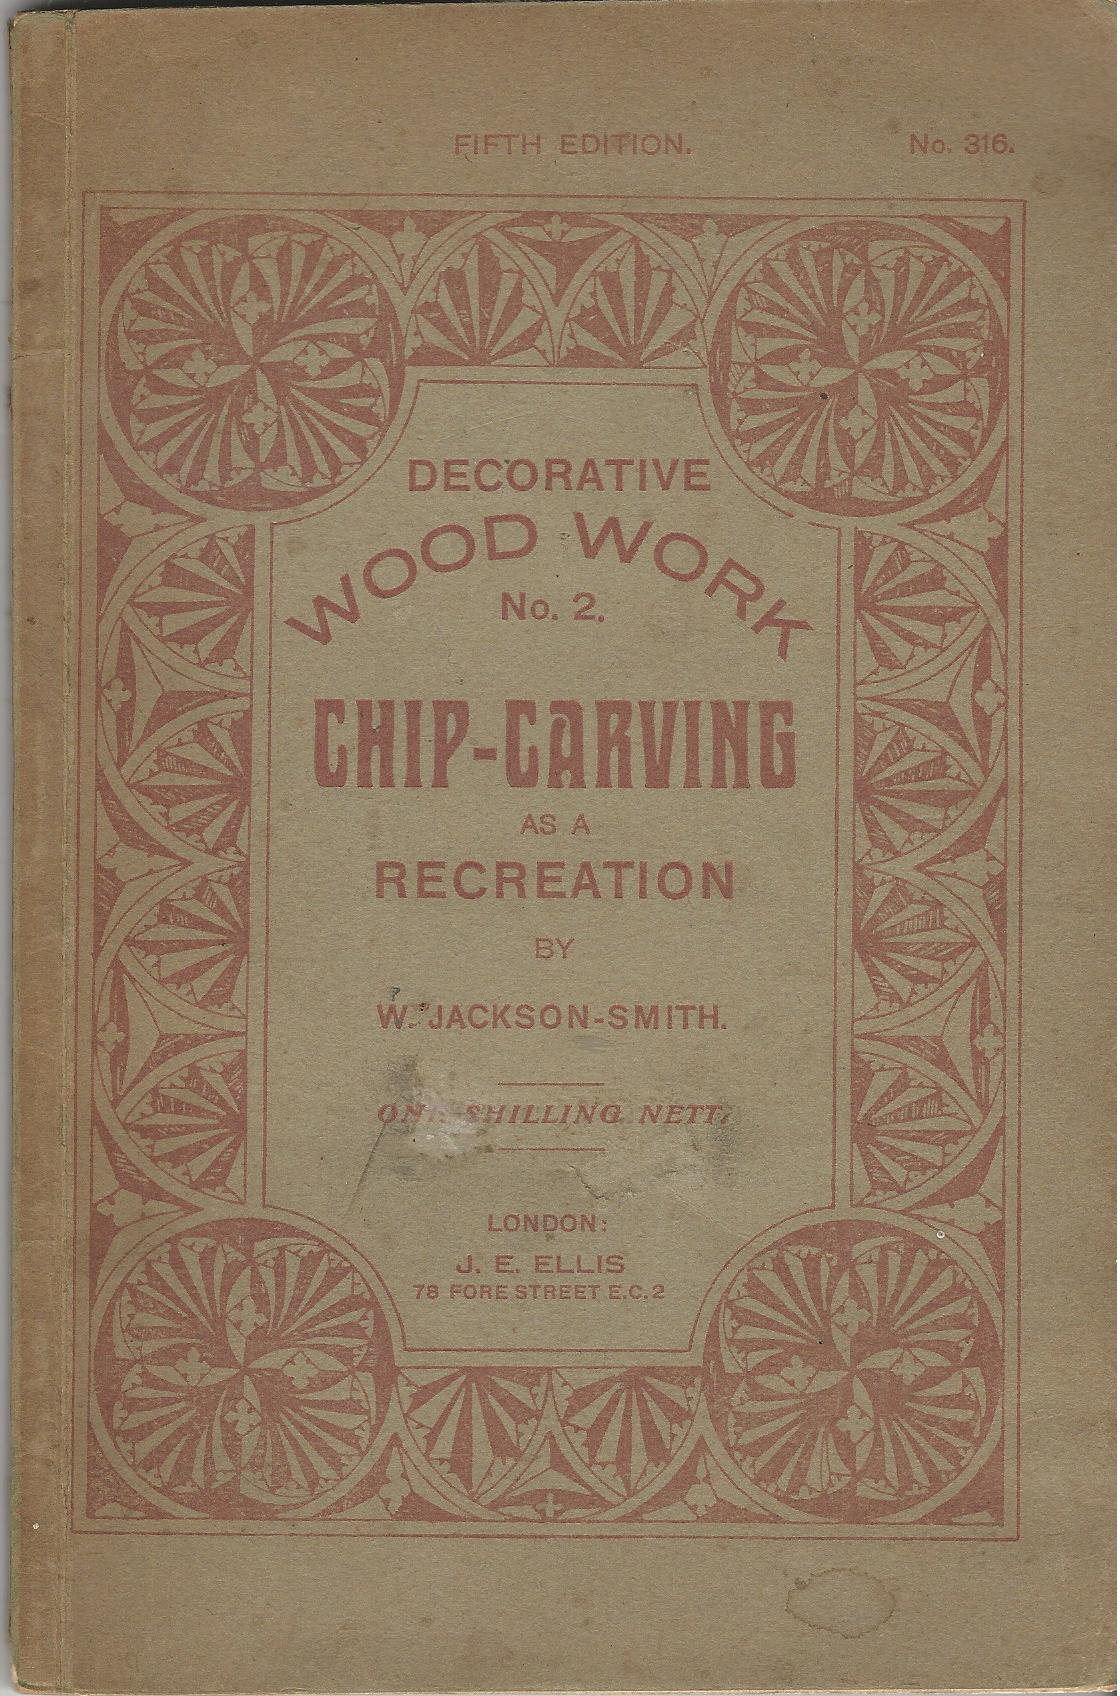 Image for Decorative Wood Work No.2.: Chip-Carving as a Recreation.